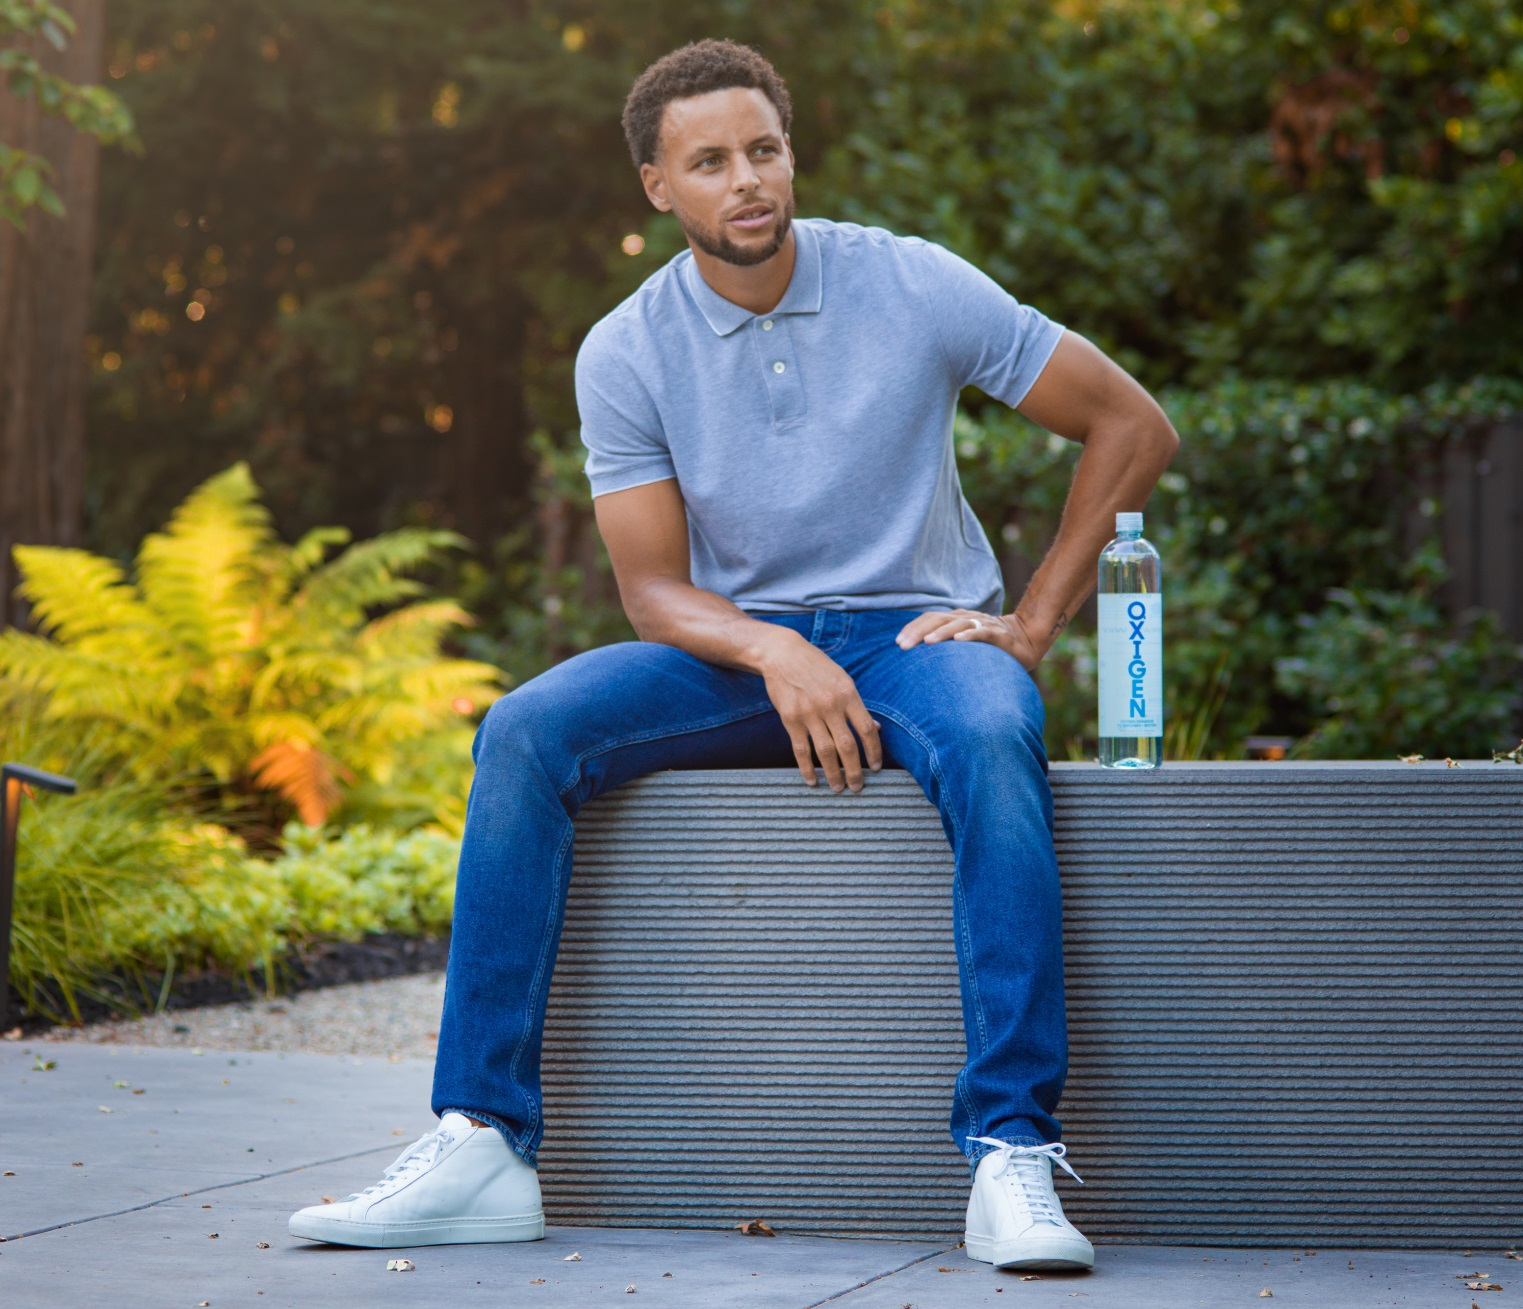 Oxigen Water Announces Stephen Curry As New Owner